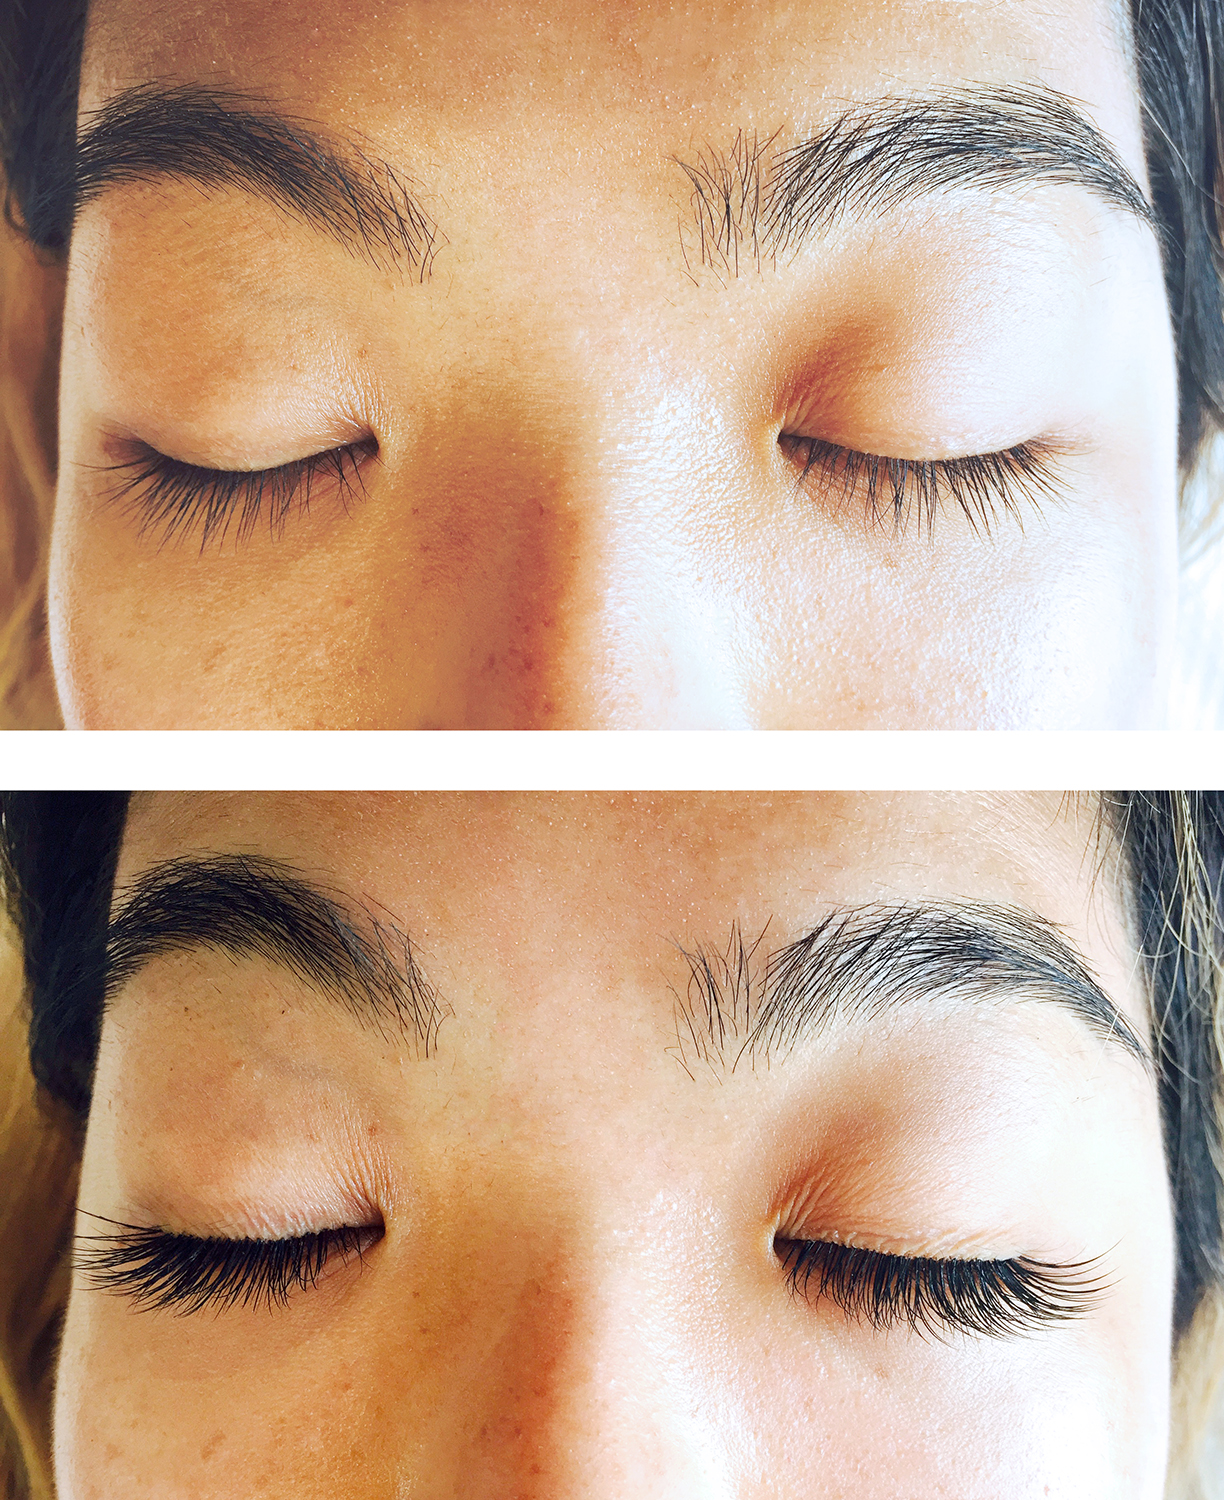 A Newbie's Guide to Eyelash Extensions